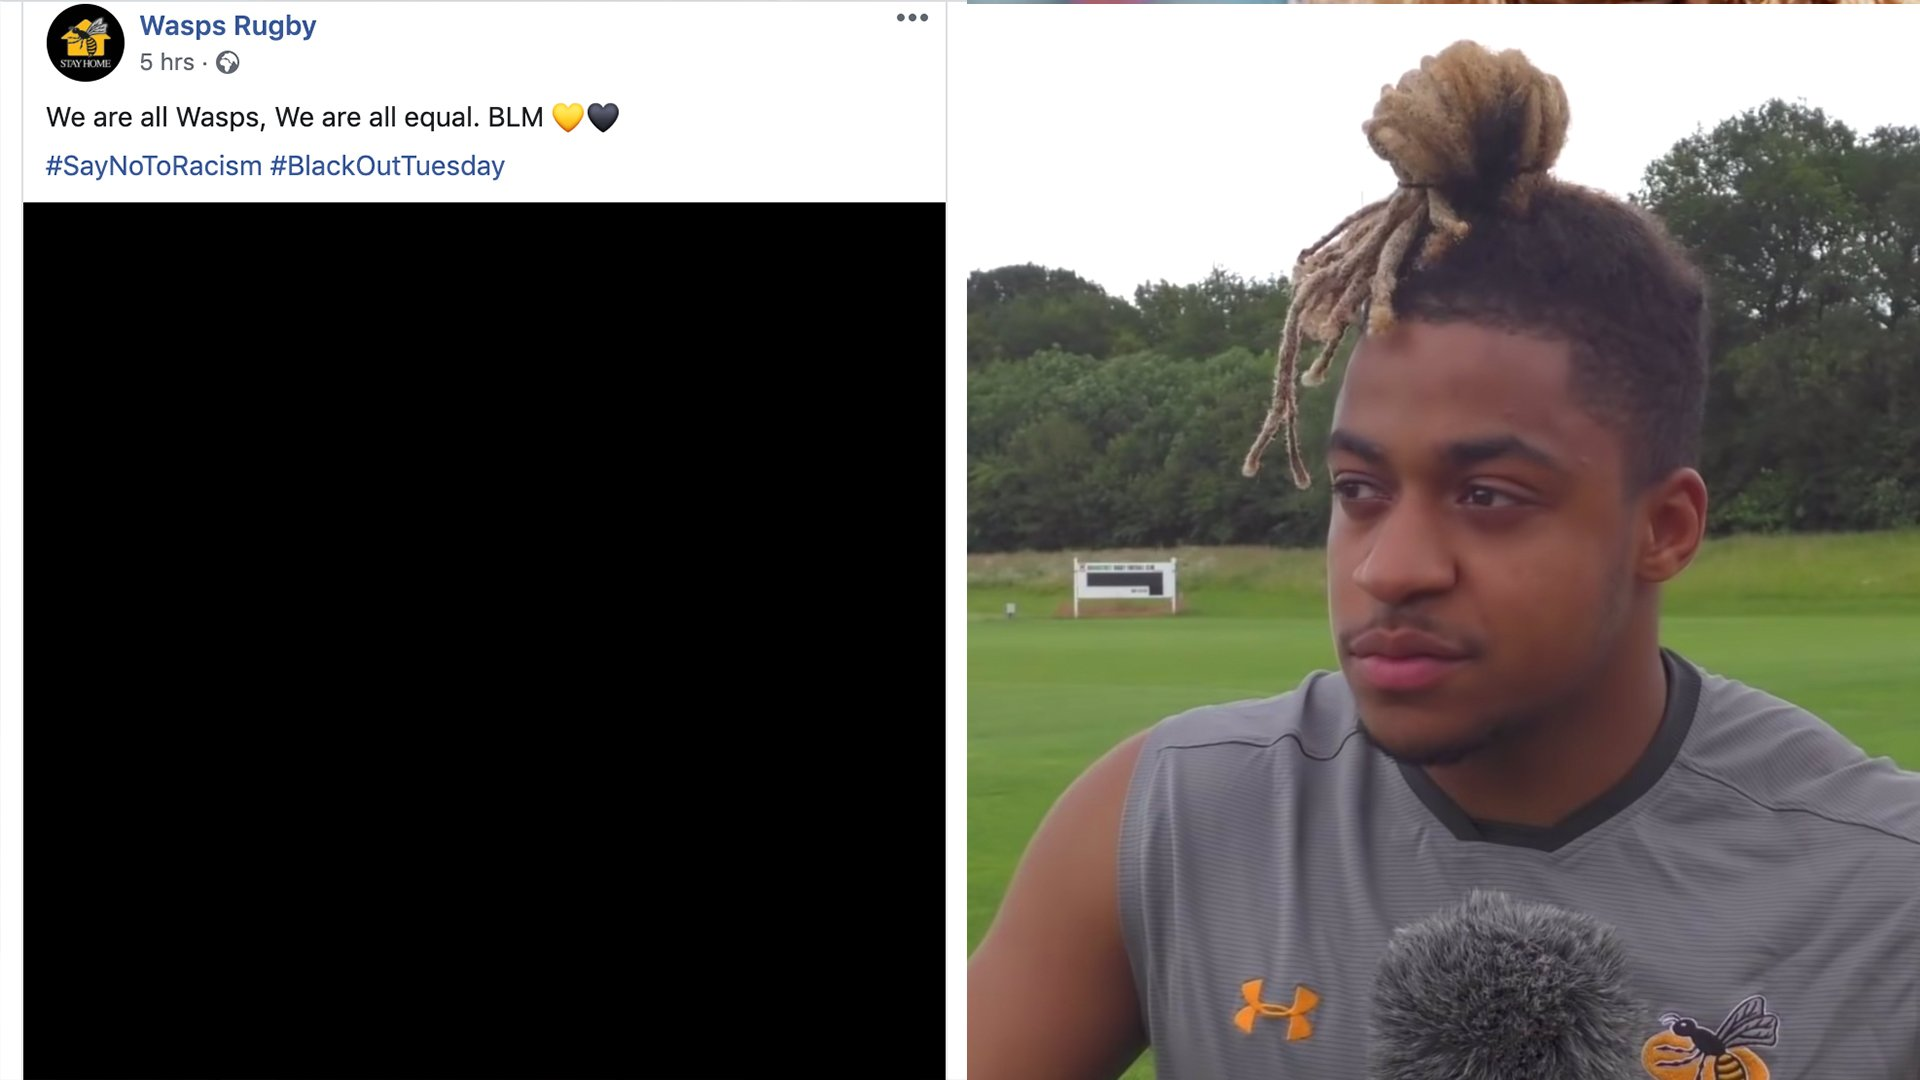 Wasps players get into nasty argument with fan over club's decision to partake in Blackout Tuesday